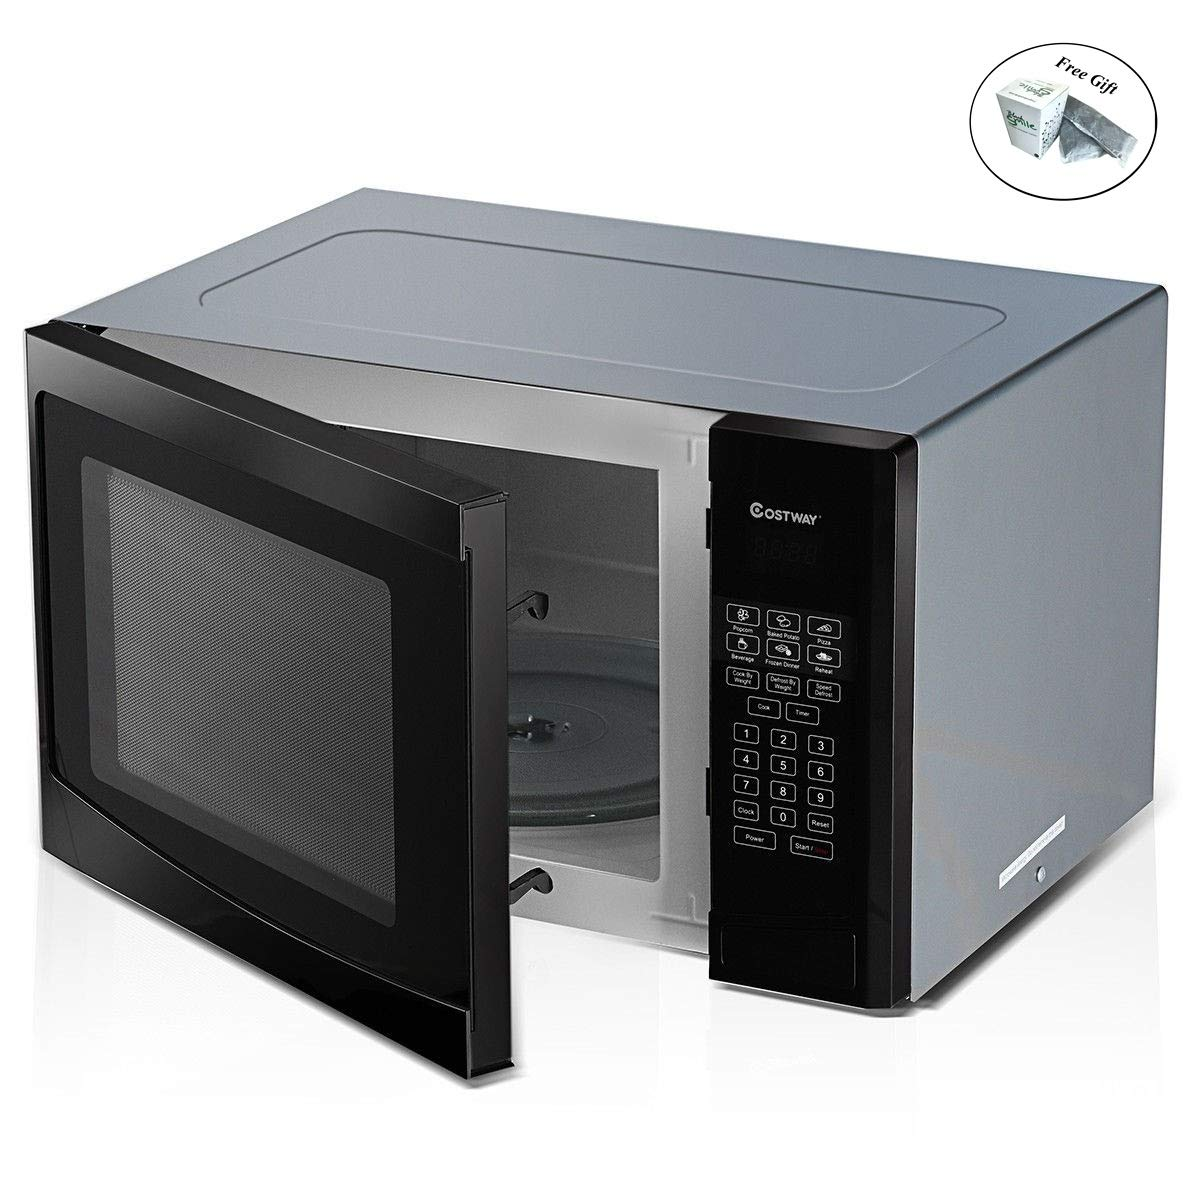 Costway 1.1 cu. ft. Programmable Microwave Oven 1000W LED Display Only by eight24hours + SPECIAL GIFT